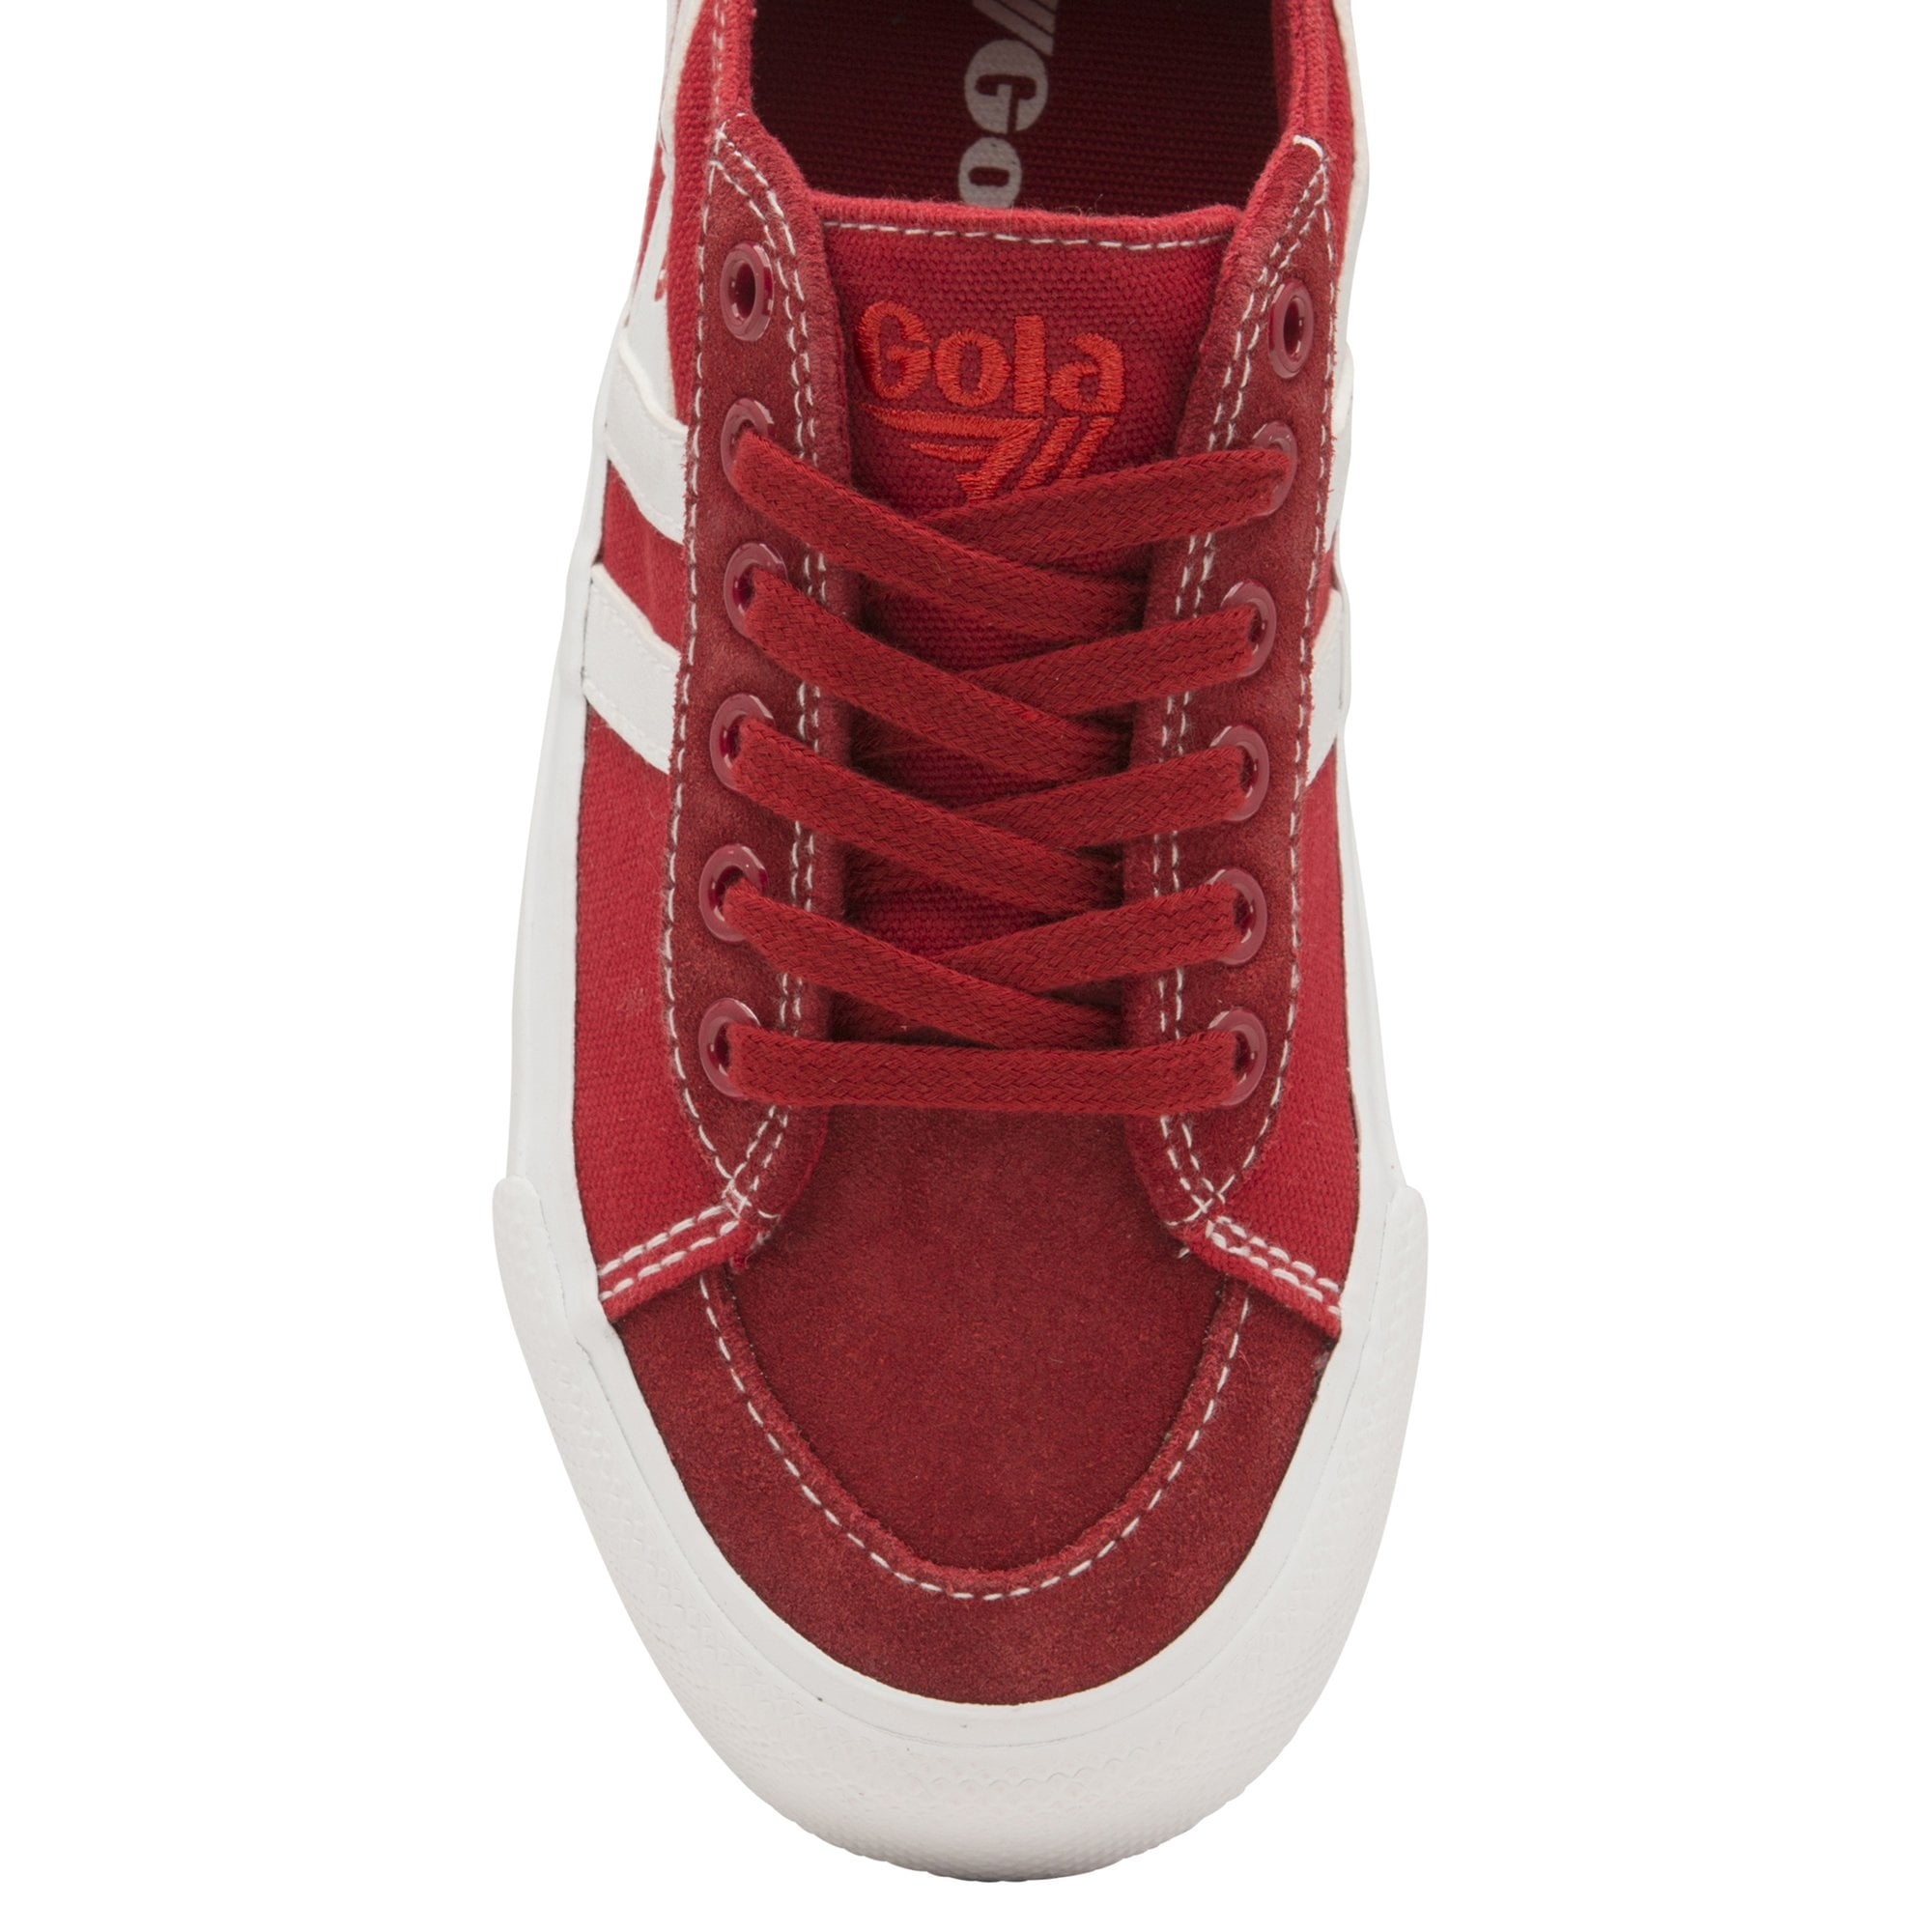 Kids Quota II Plimsoll Sneakers